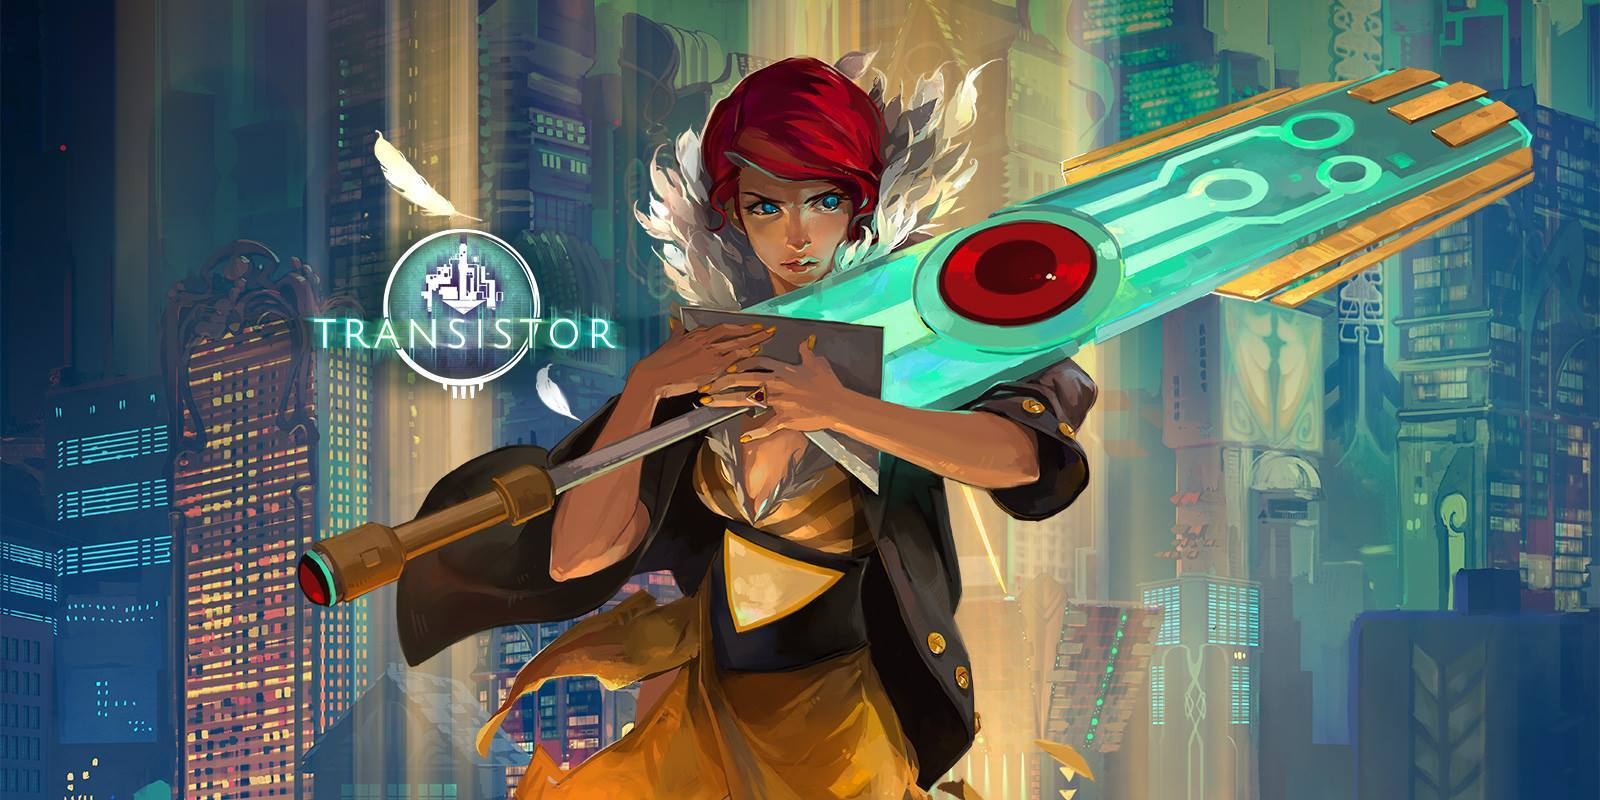 Inspired By Zelda: How Transistor Nails The Companion Character